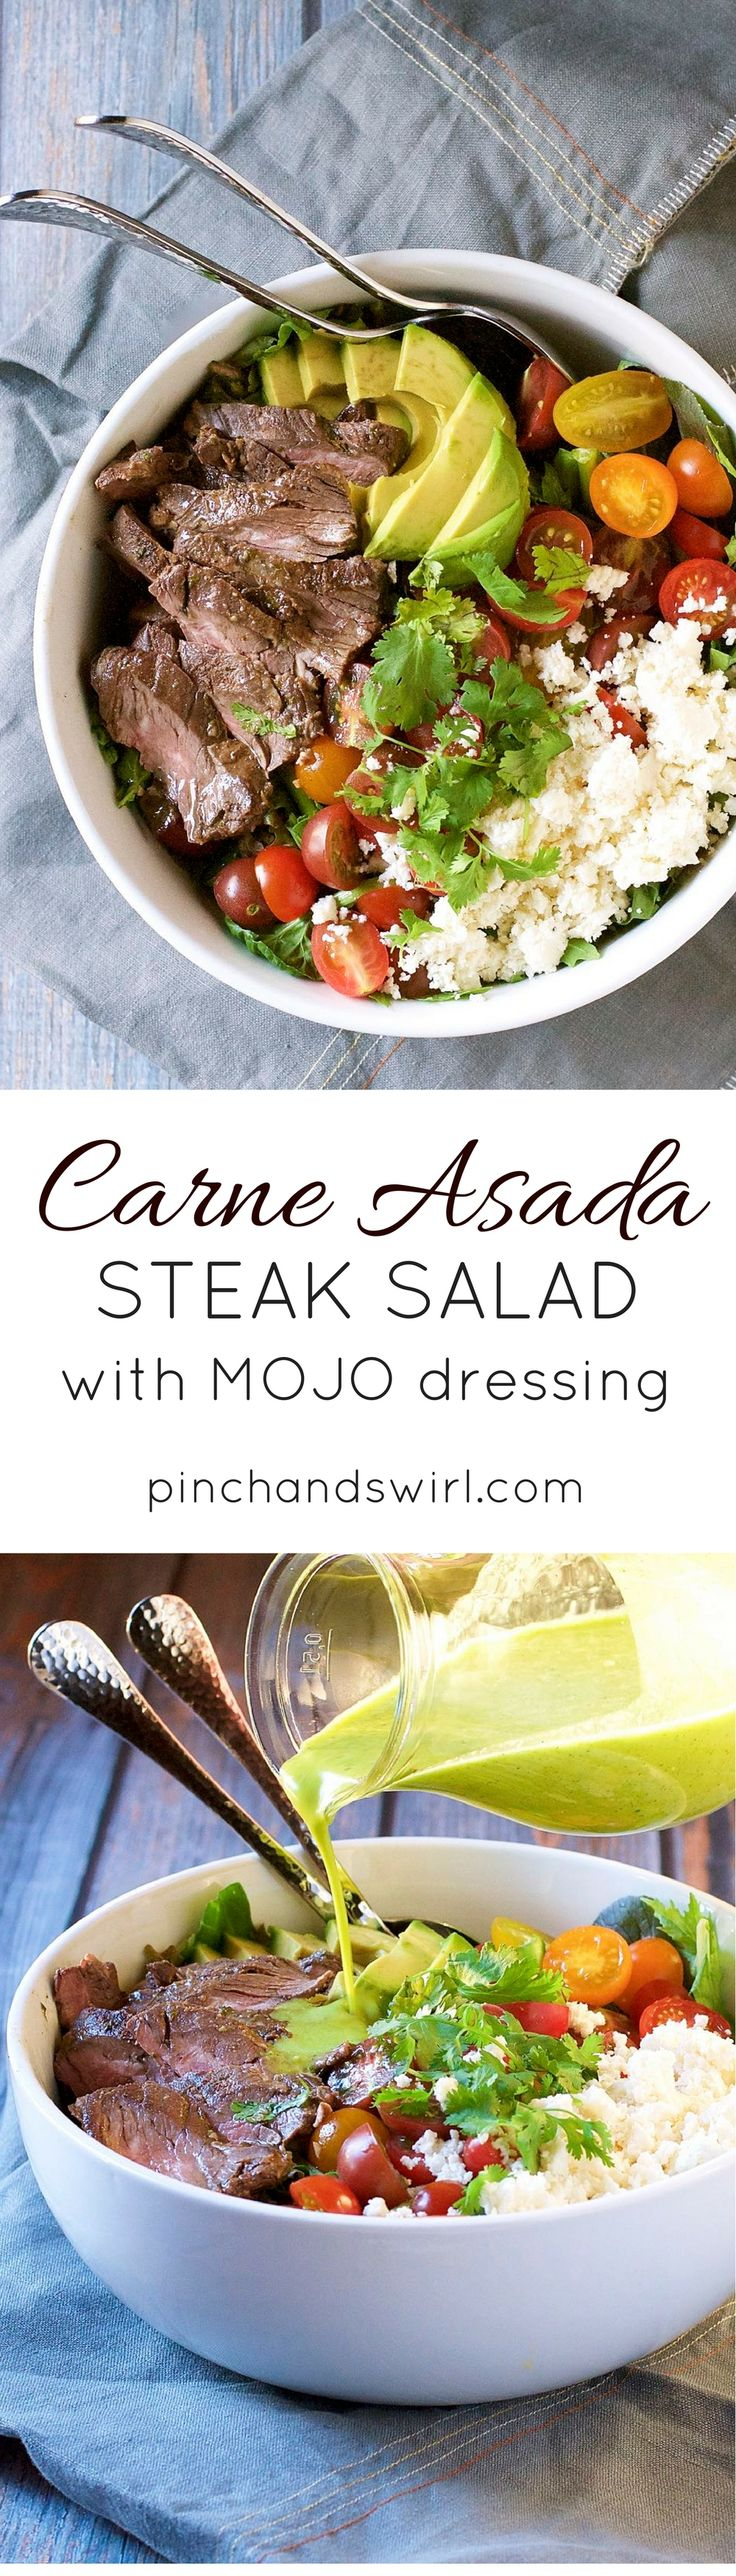 Carne Asada Steak Salad with Mojo Dressing - #easyrecipes #salad #carneasada